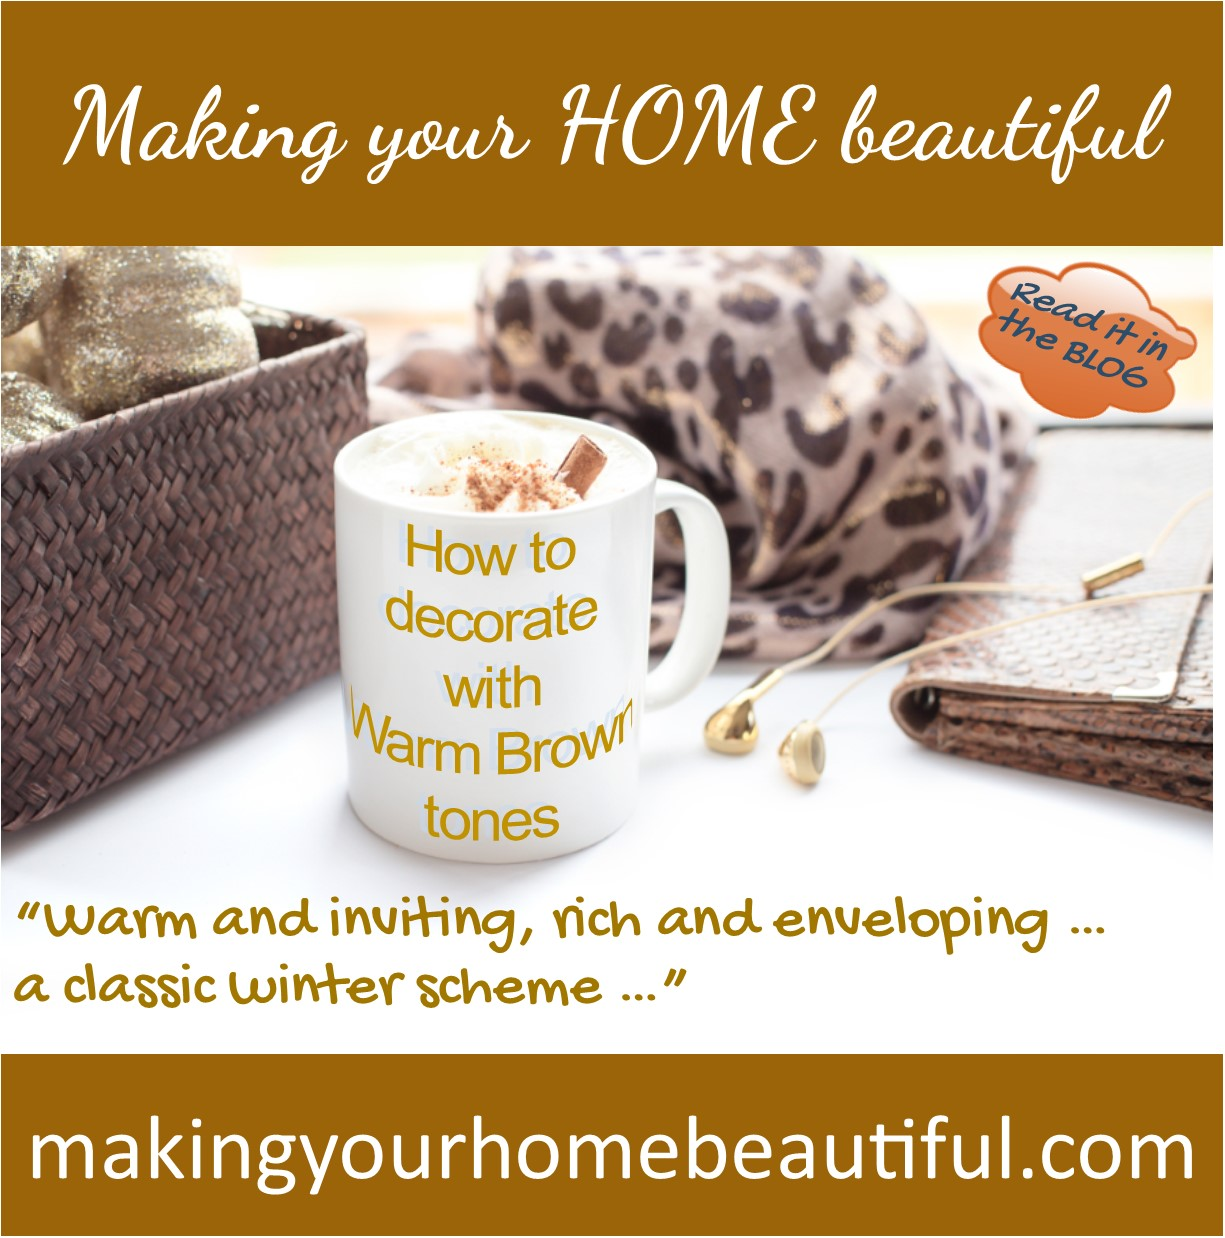 How to decorate with warm brown tones